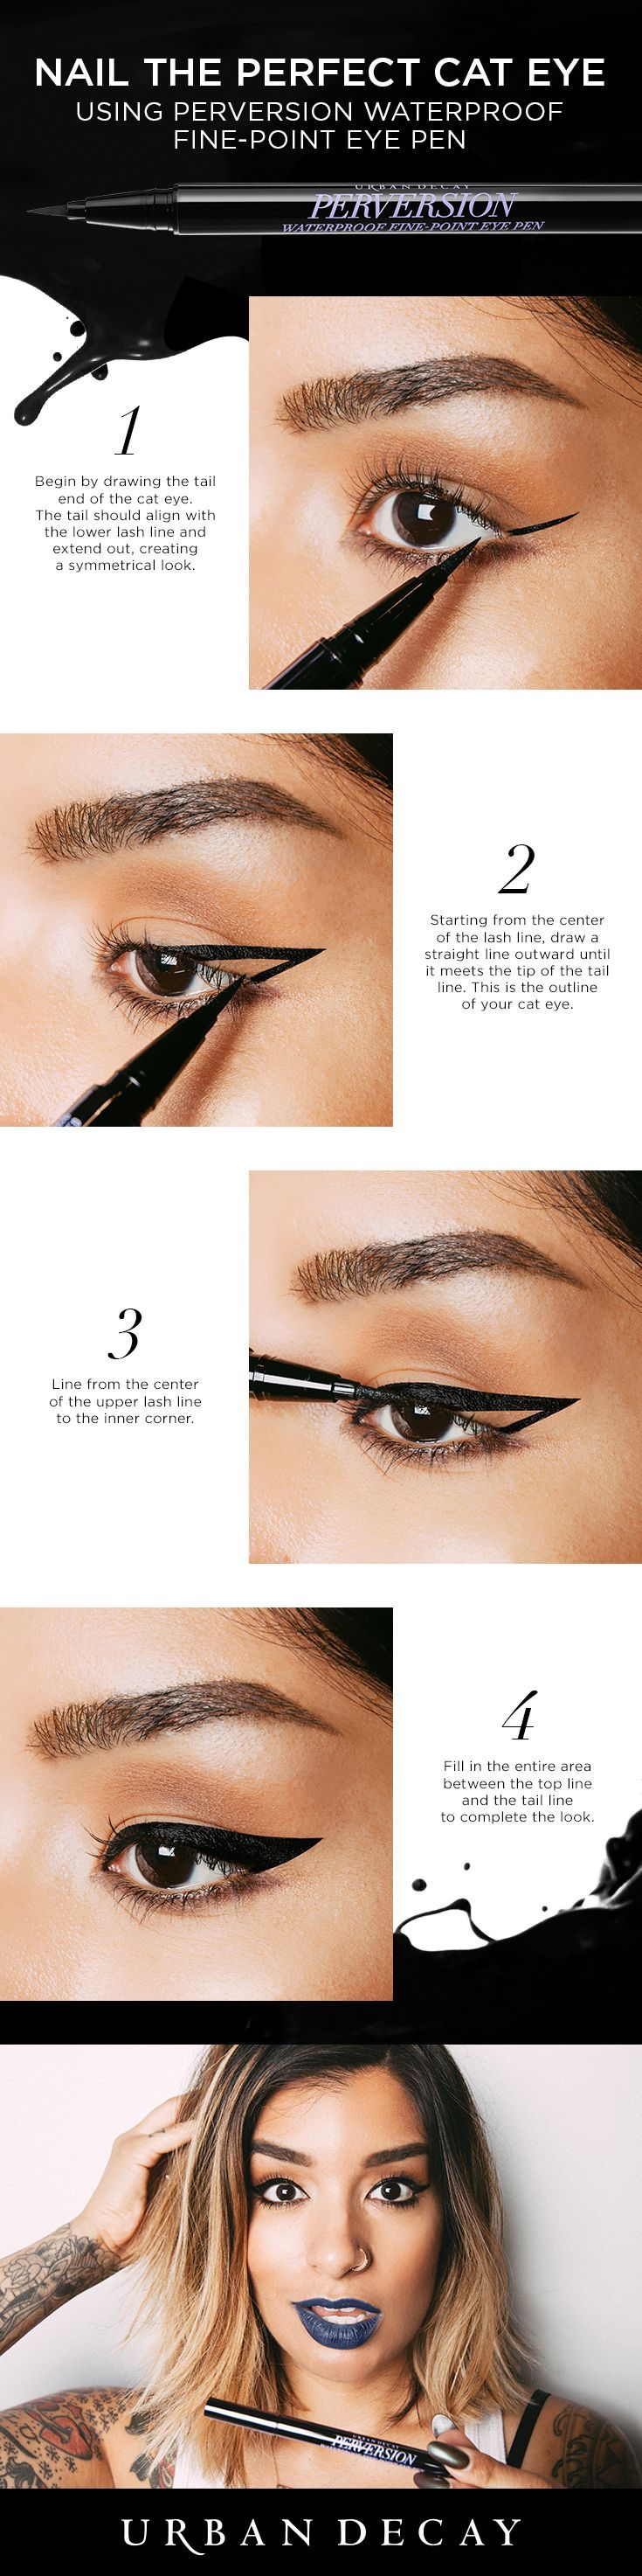 Nail the perfect cat eye every time with the Perversion Waterproof Fine-Point Eye Pen! It's super-smooth, free-flowing and lays down intense black lines with absolute precision. Follow these 4 simple steps to get the look! #beautydiybody